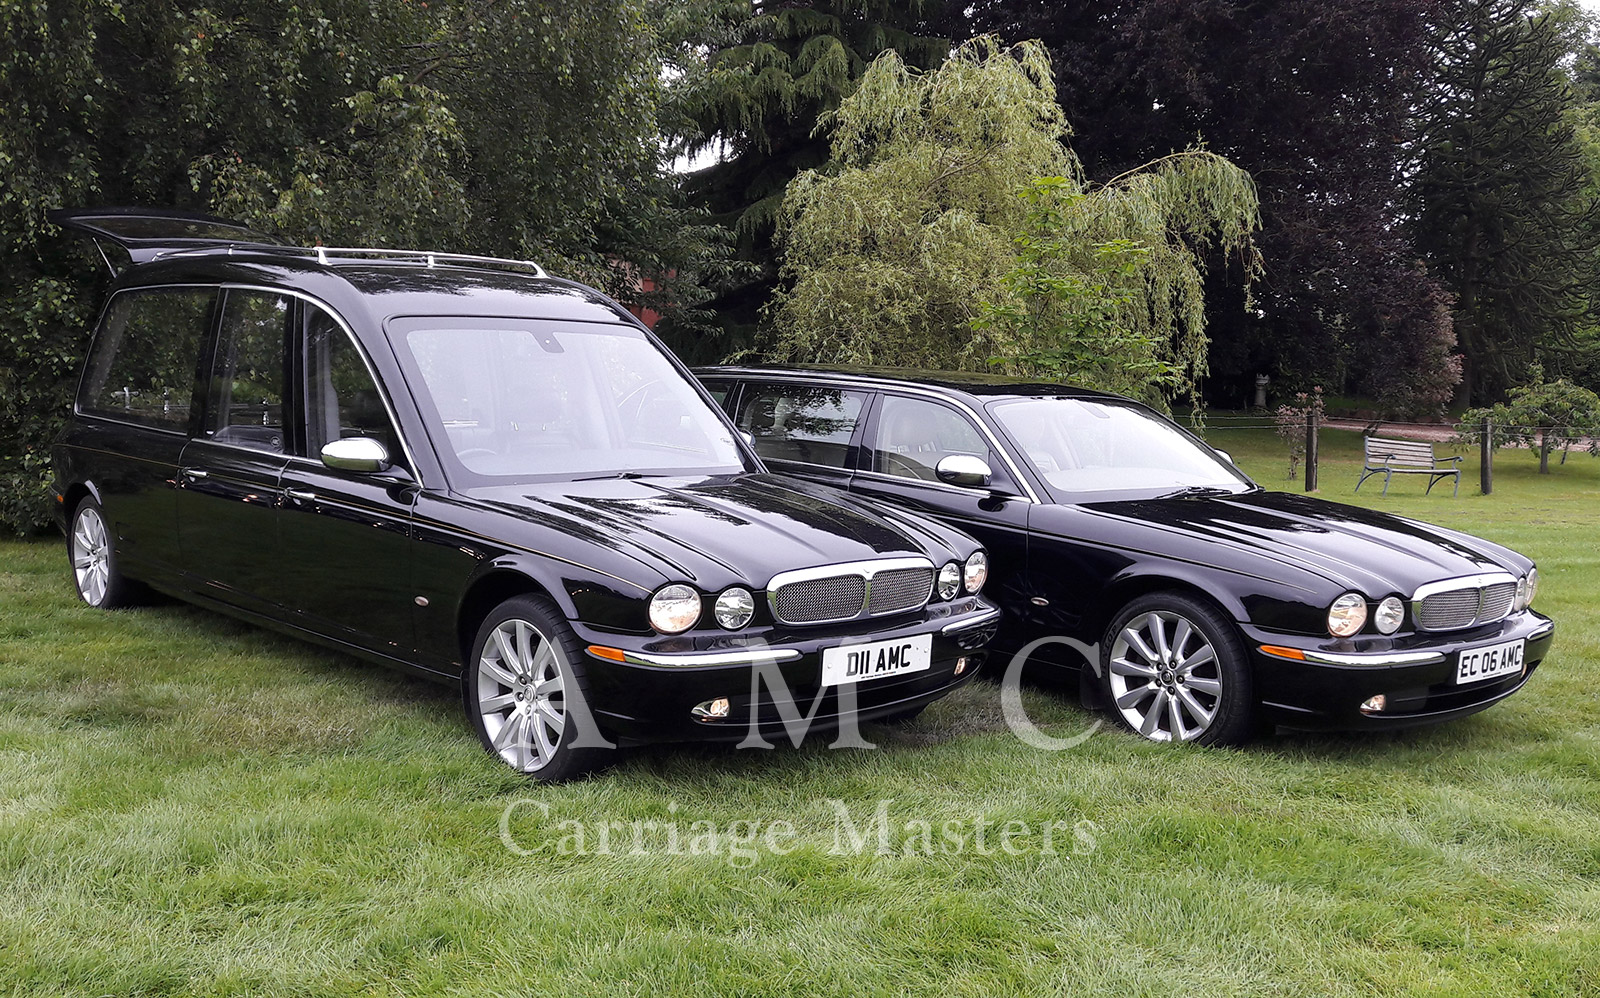 Black Jaguar XJ X350 Model Hearse